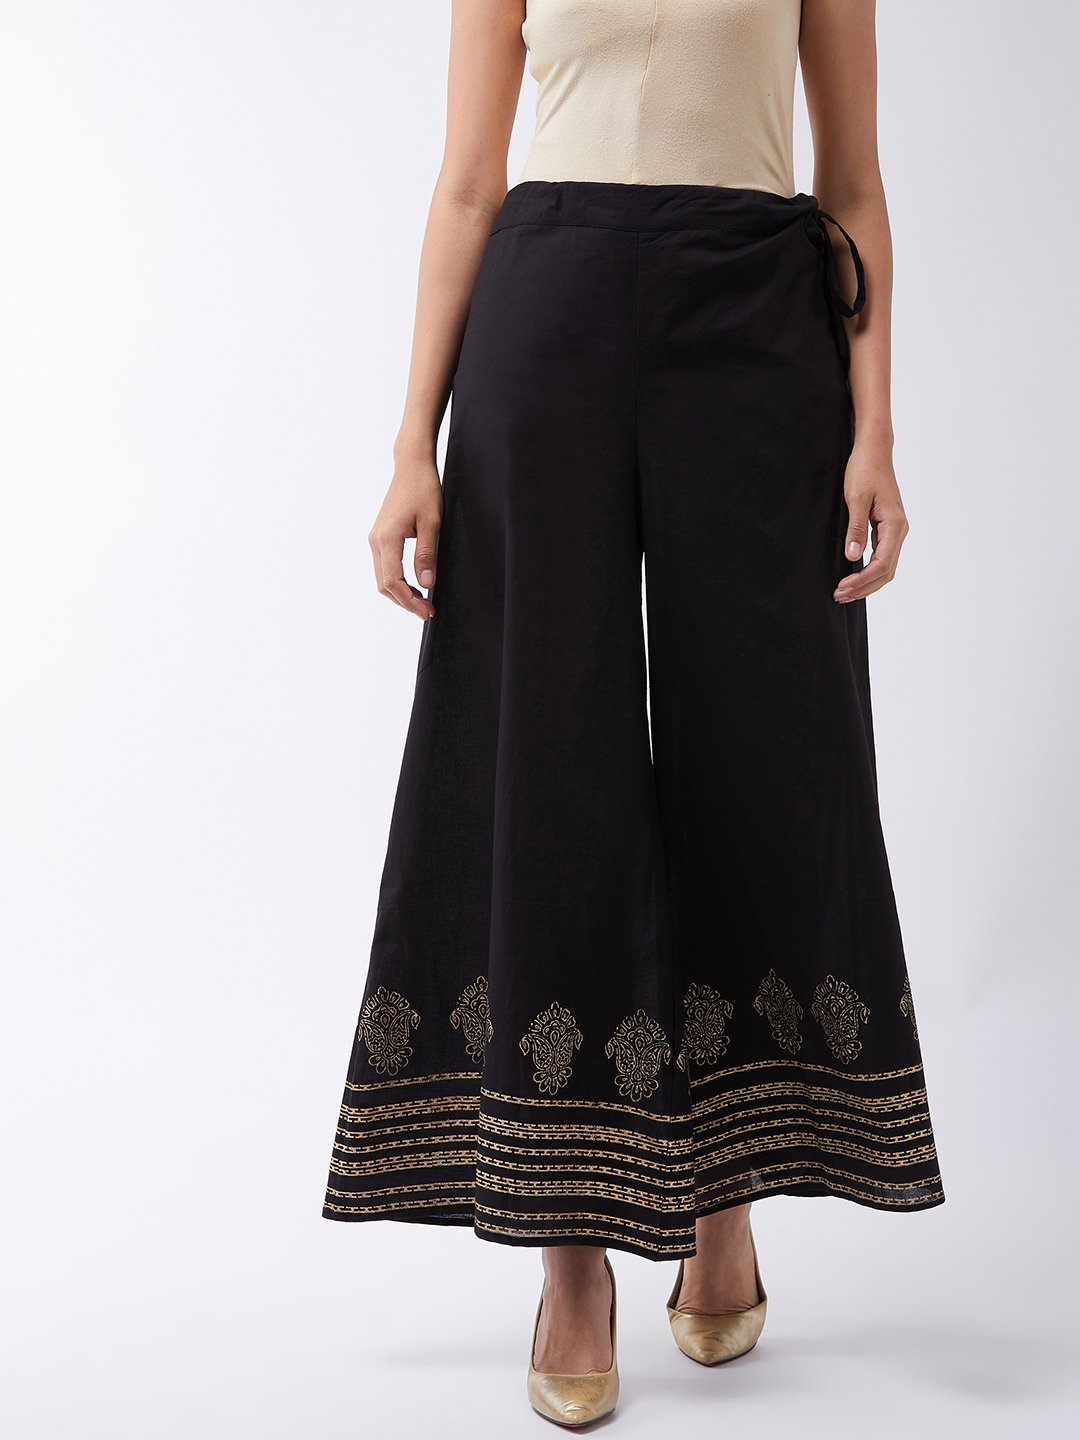 Black Palazzo With Block Print Motif